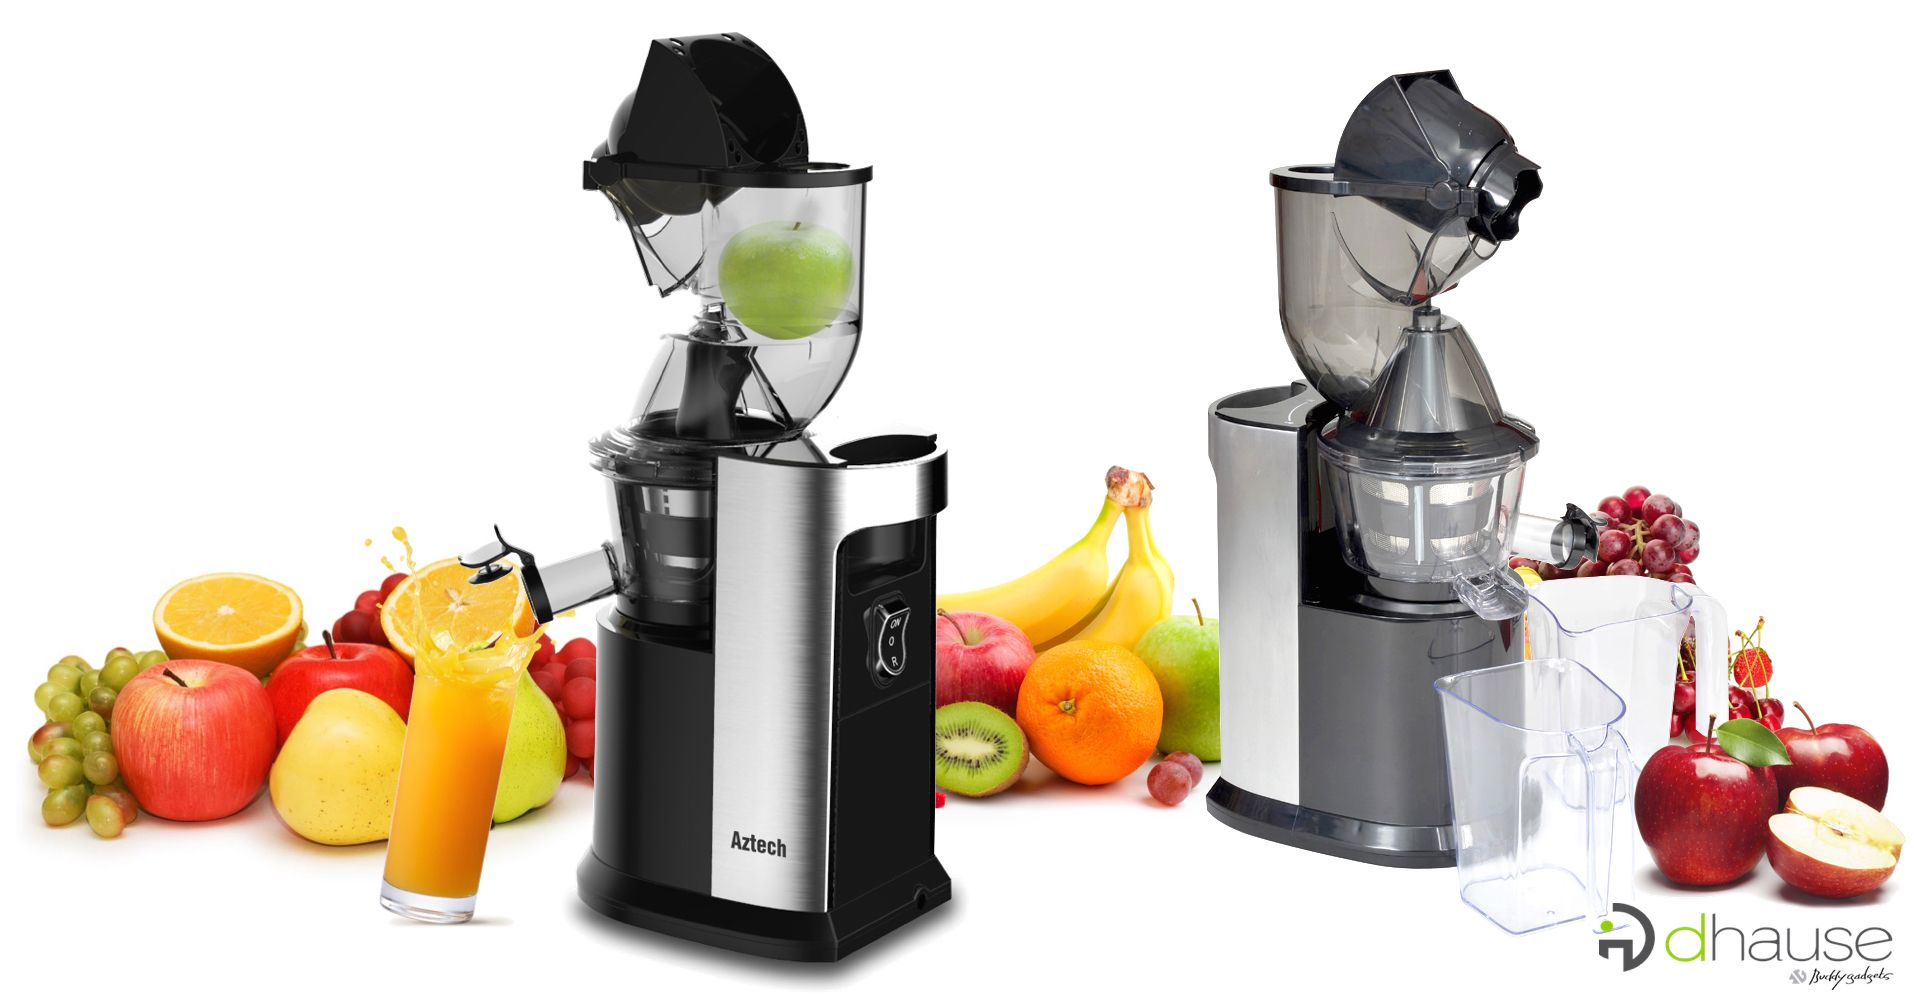 Aztech Slow Juicer Review : Slow Juicer. . Produc Images. . Aimox Slow Juicer. Skg New Generation Slow Juicers Solve One Of ...